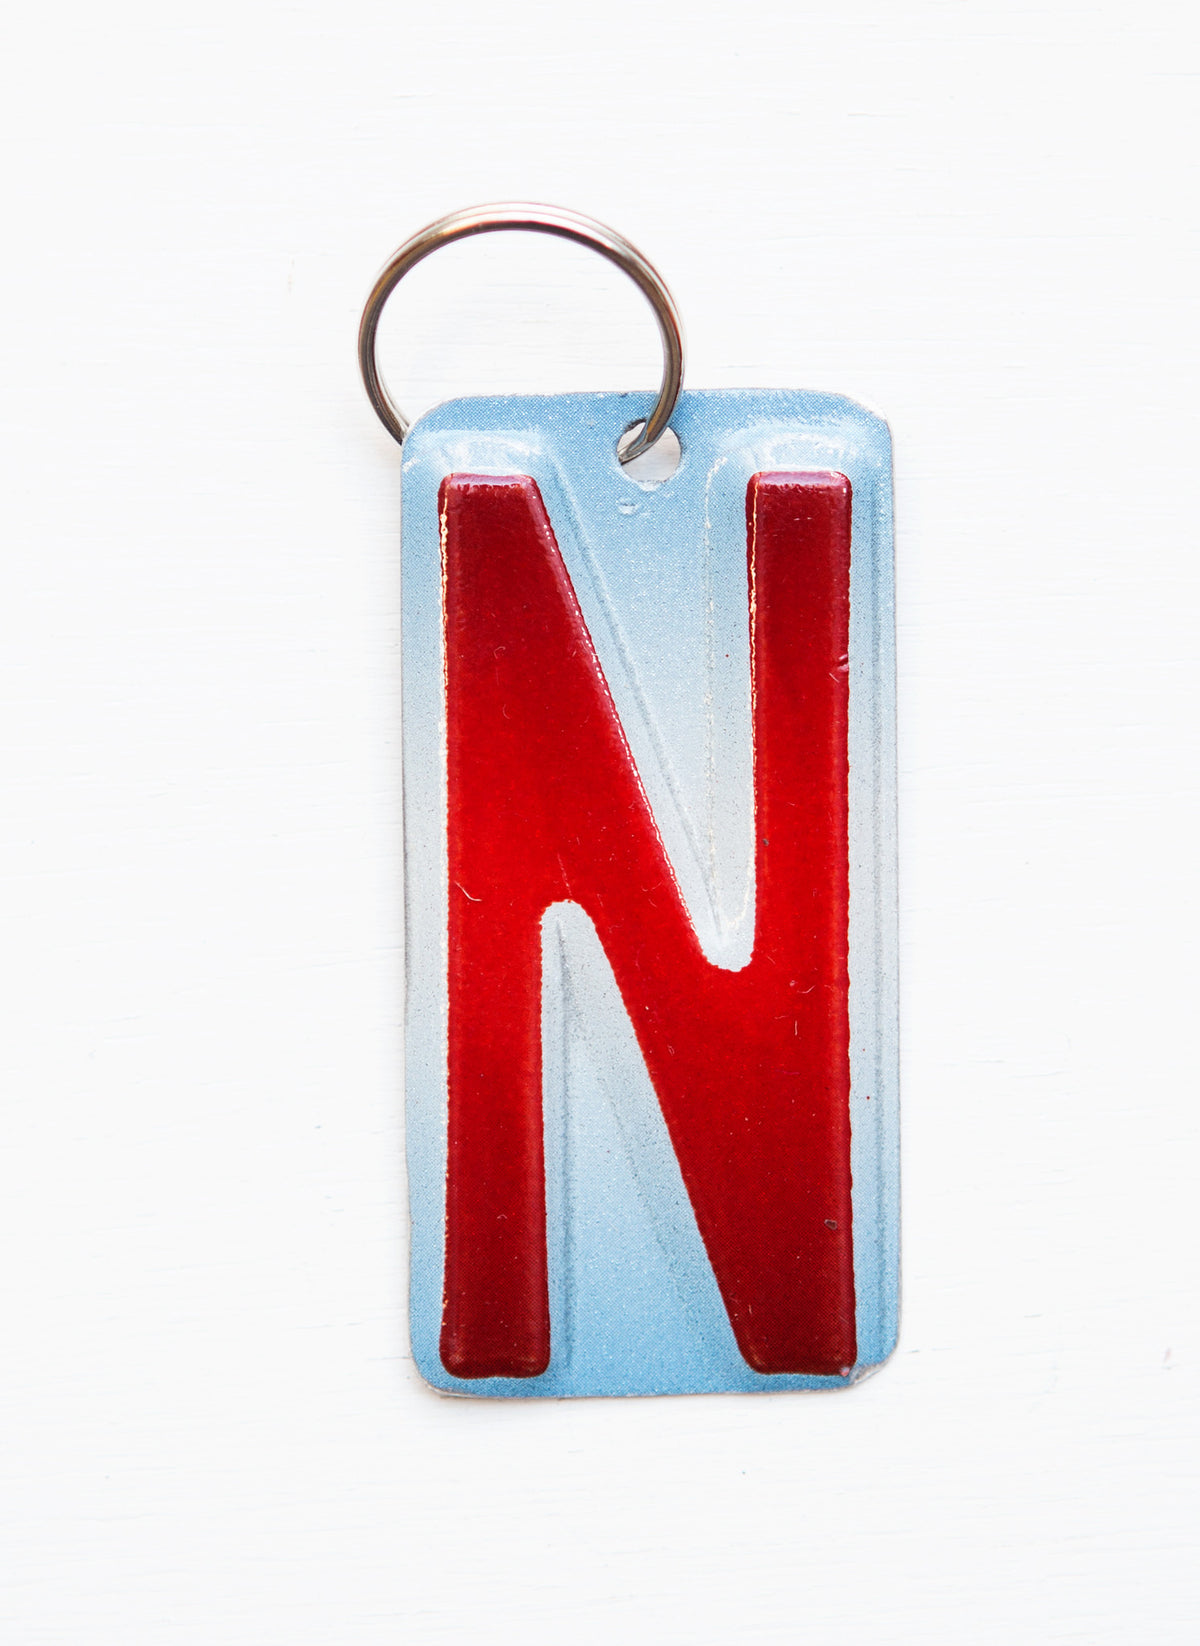 LETTER N KEY CHAIN - Unique Pl8z